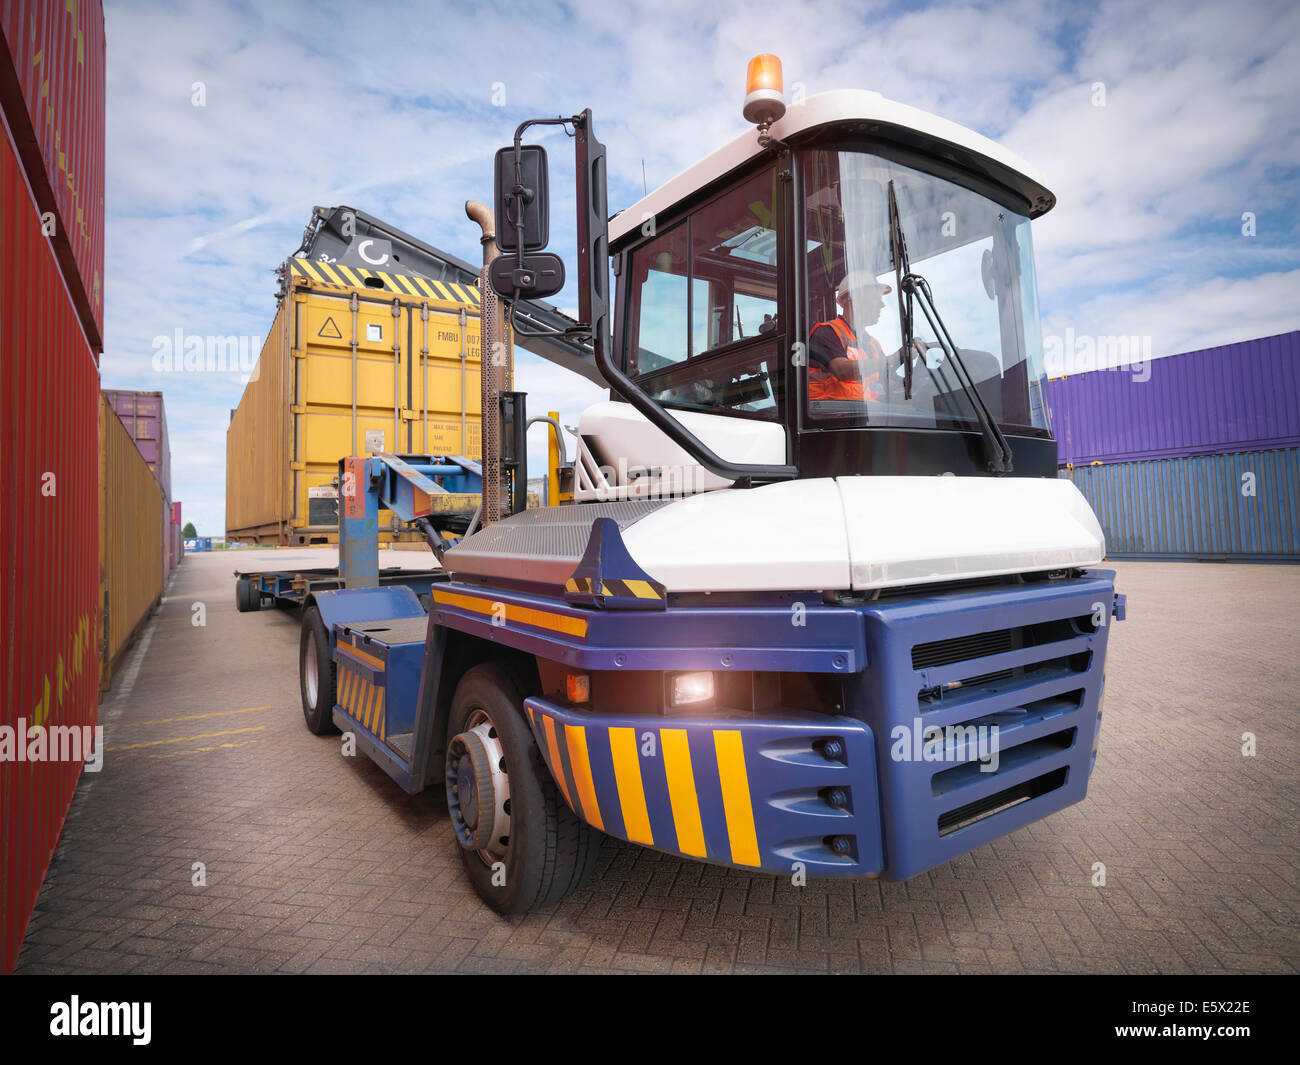 Crane unloading shipping containers from truck in port - Stock Image